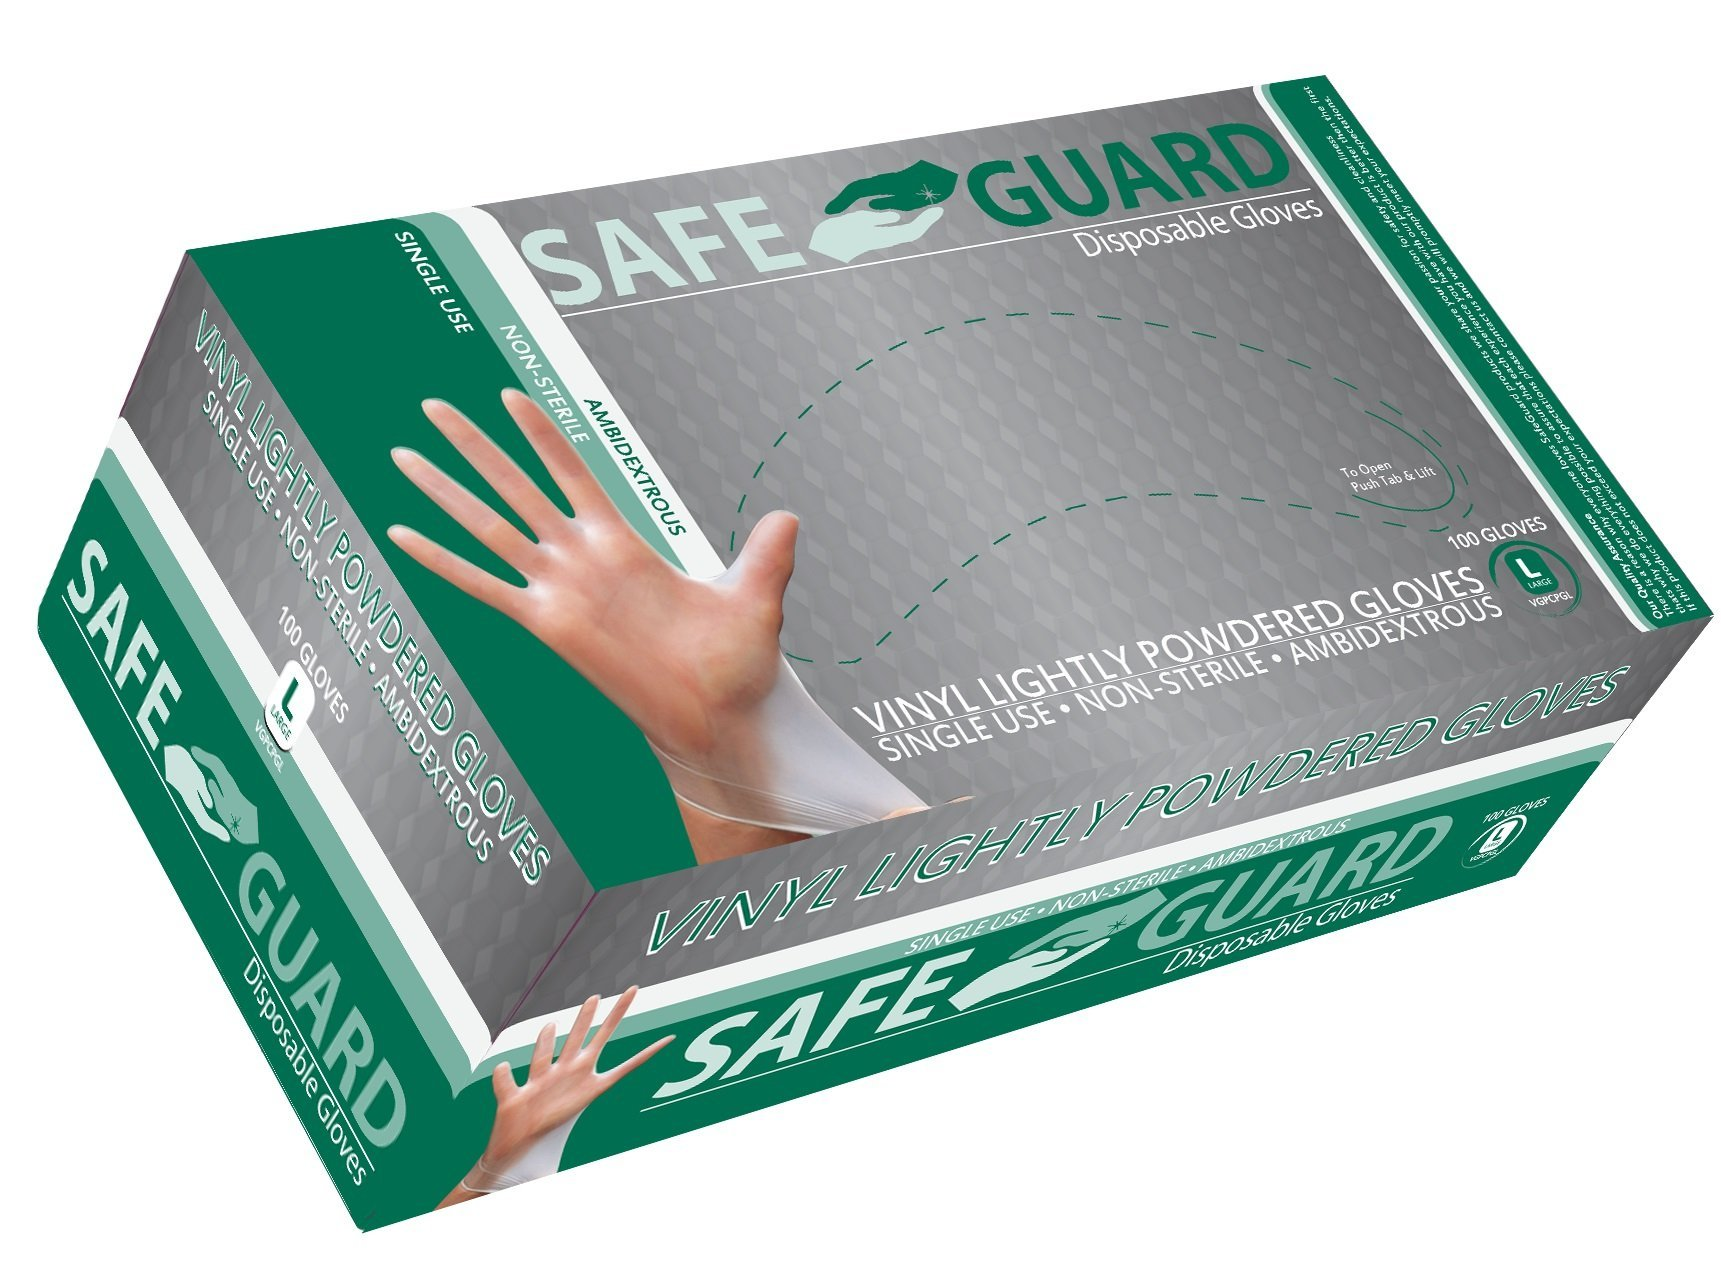 Safeguard Vinyl Powdered Gloves, Large, 1000 Count